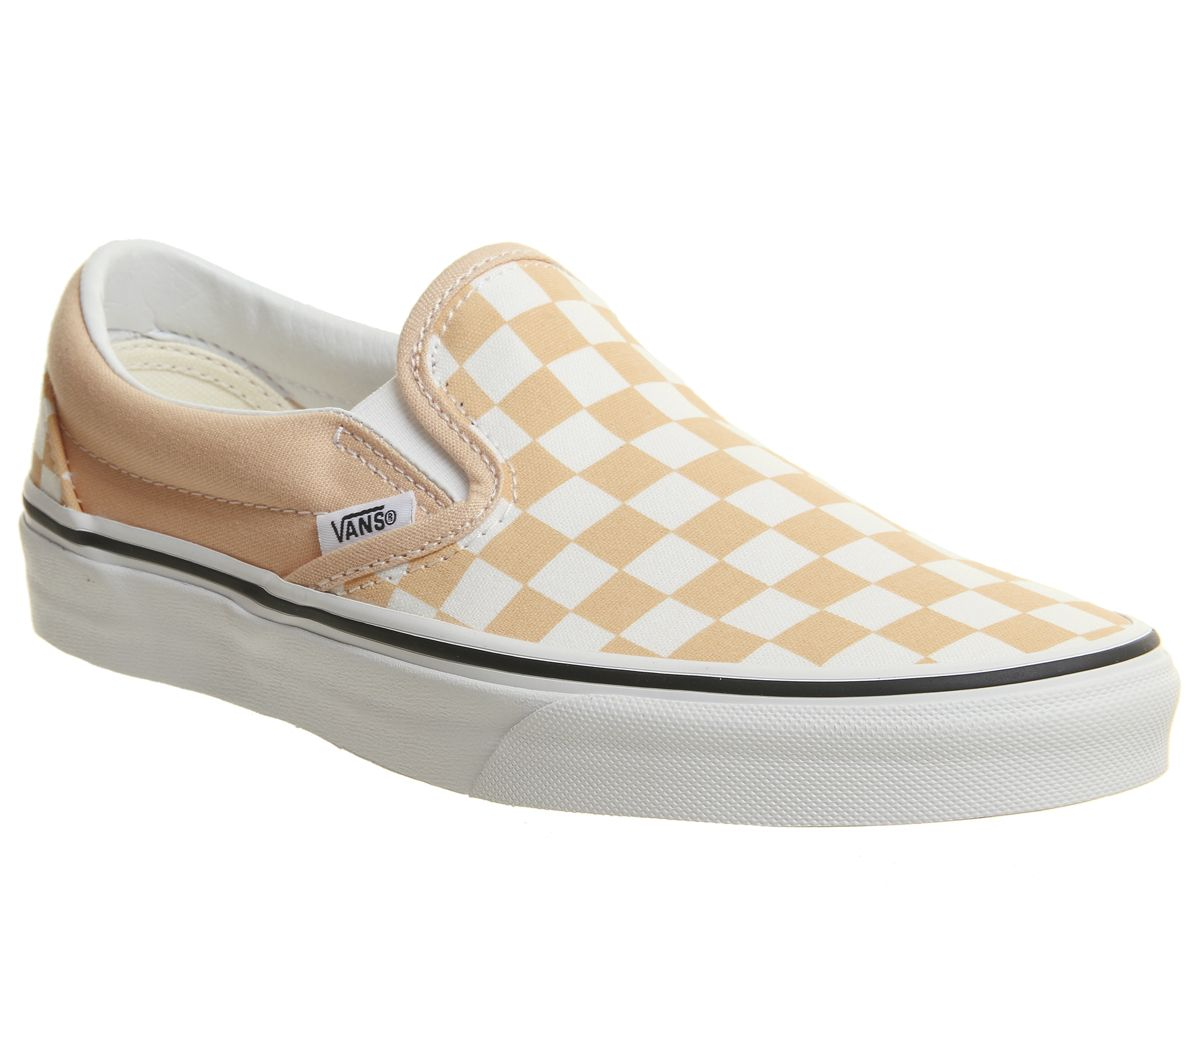 937f0983756f Vans Vans Classic Slip On Trainers Apricot True White - Hers trainers